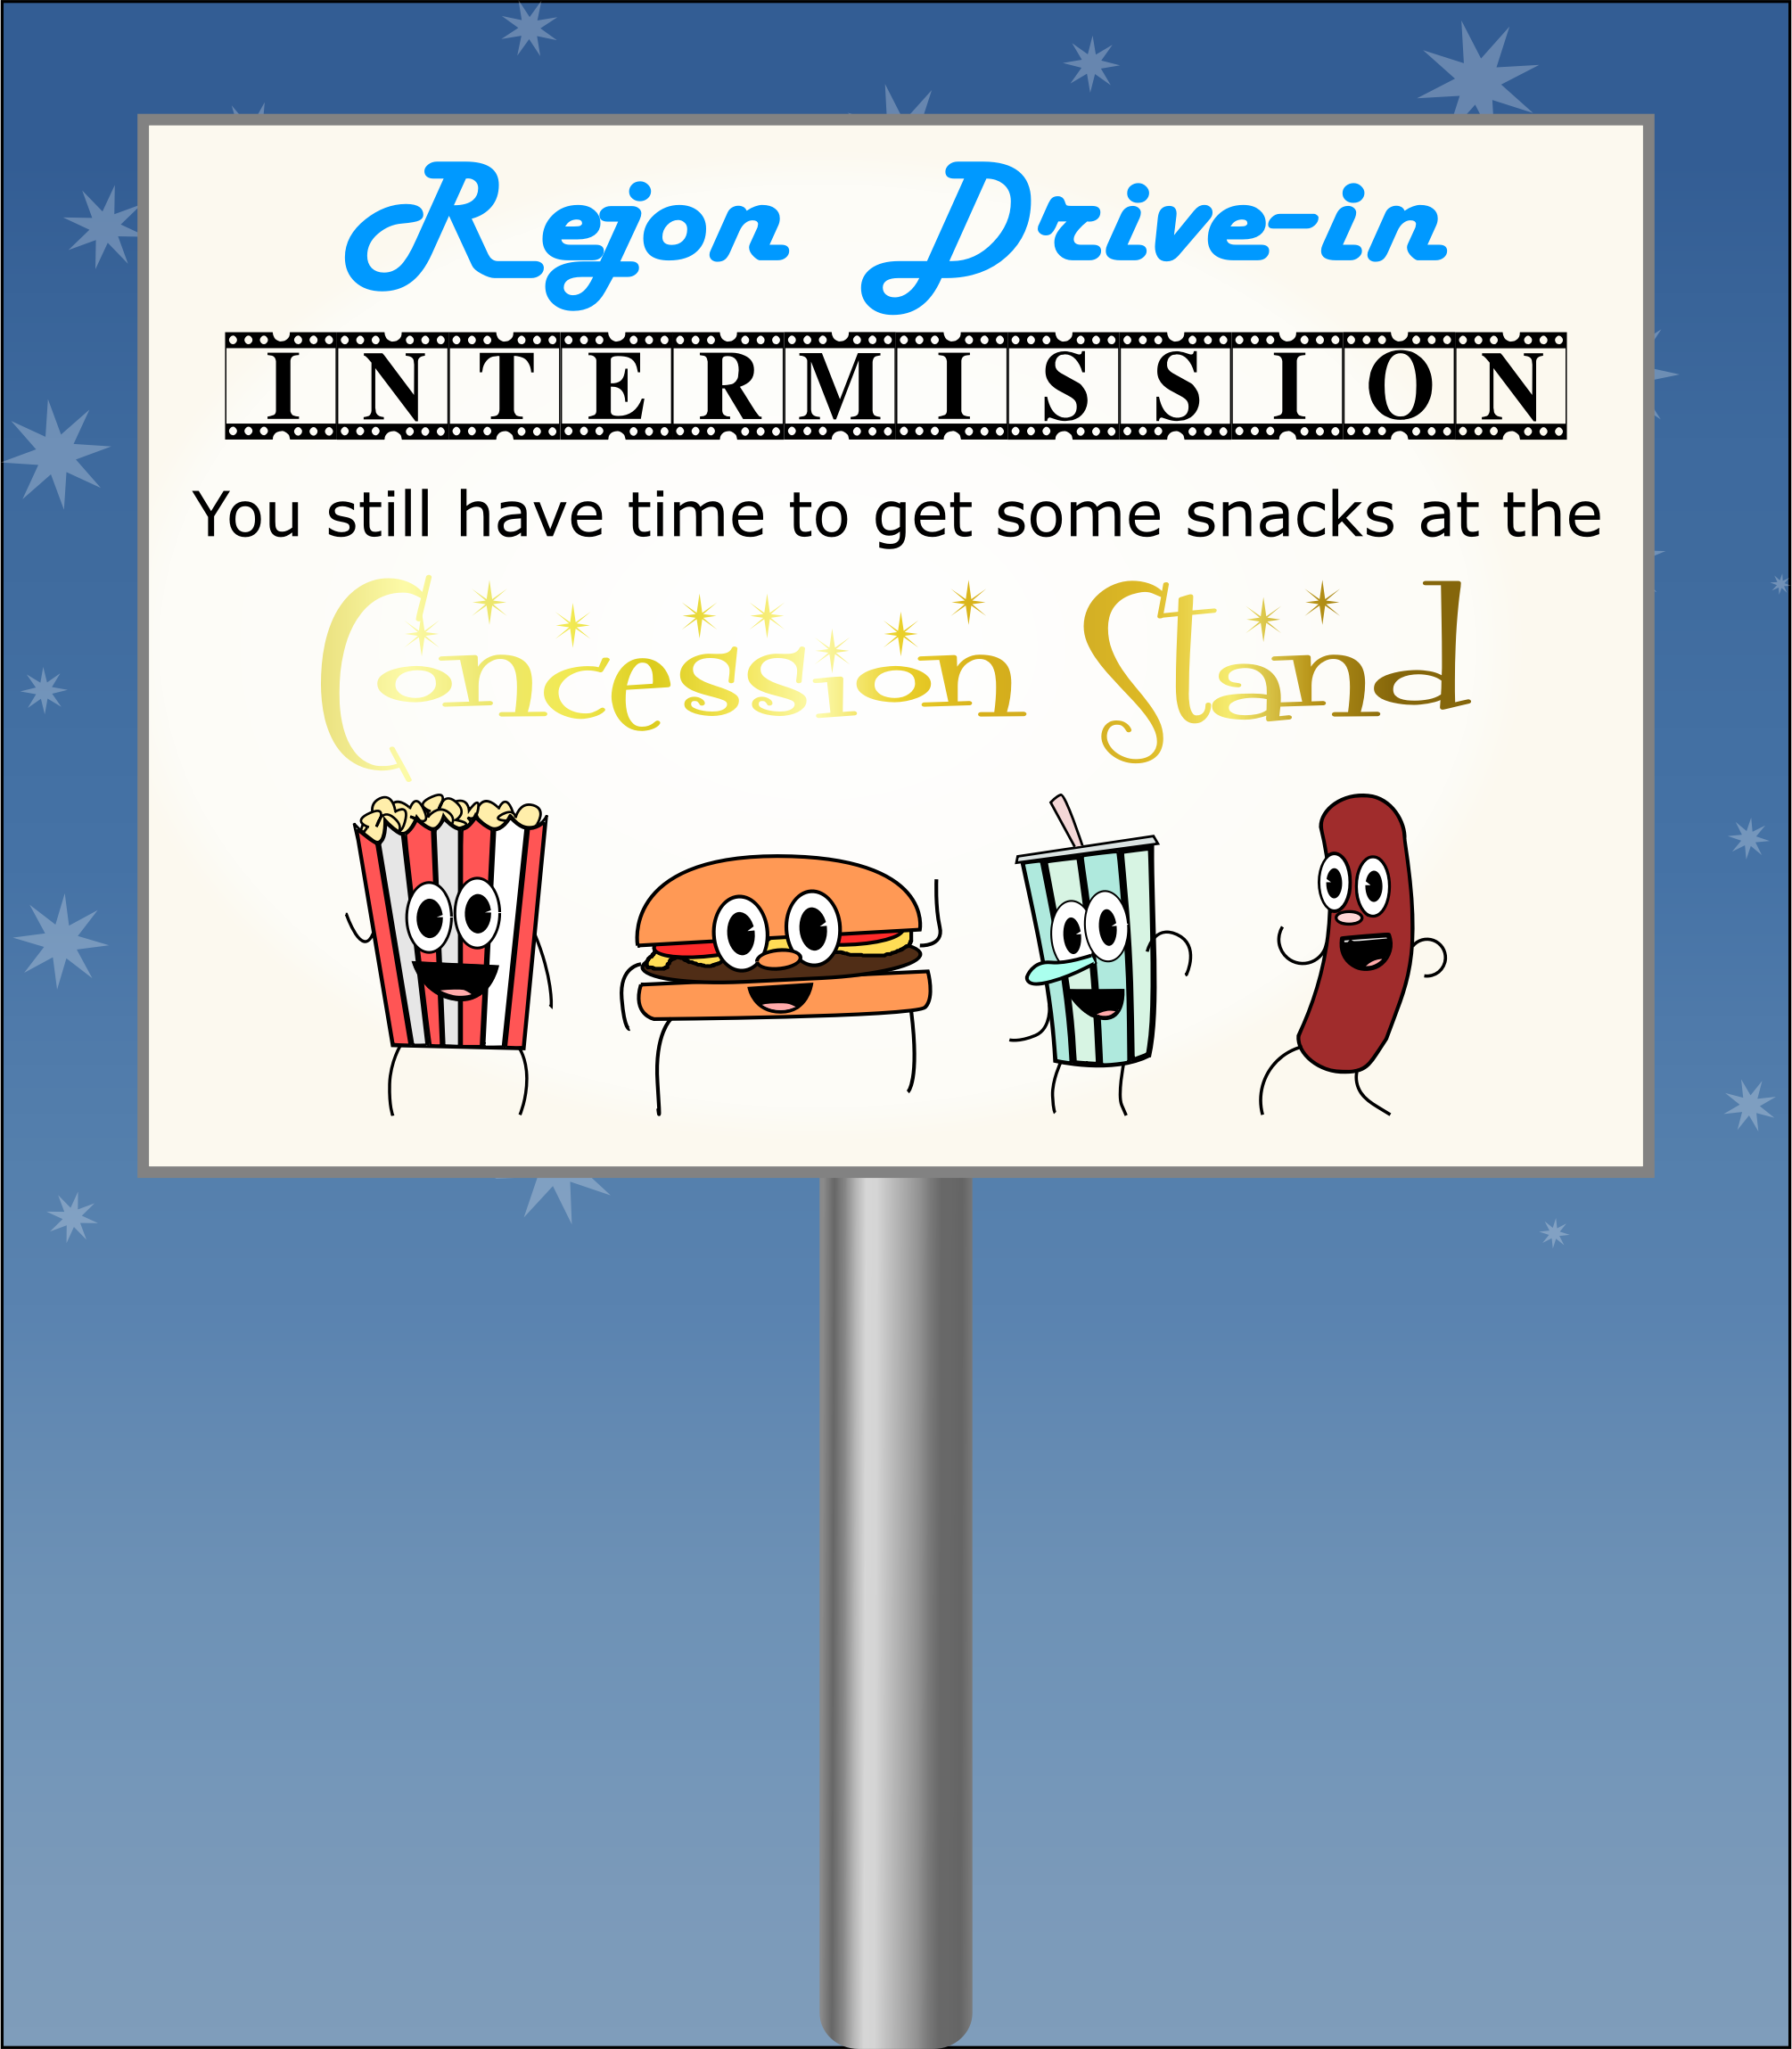 Rejon Drive-In by Arvin61r58